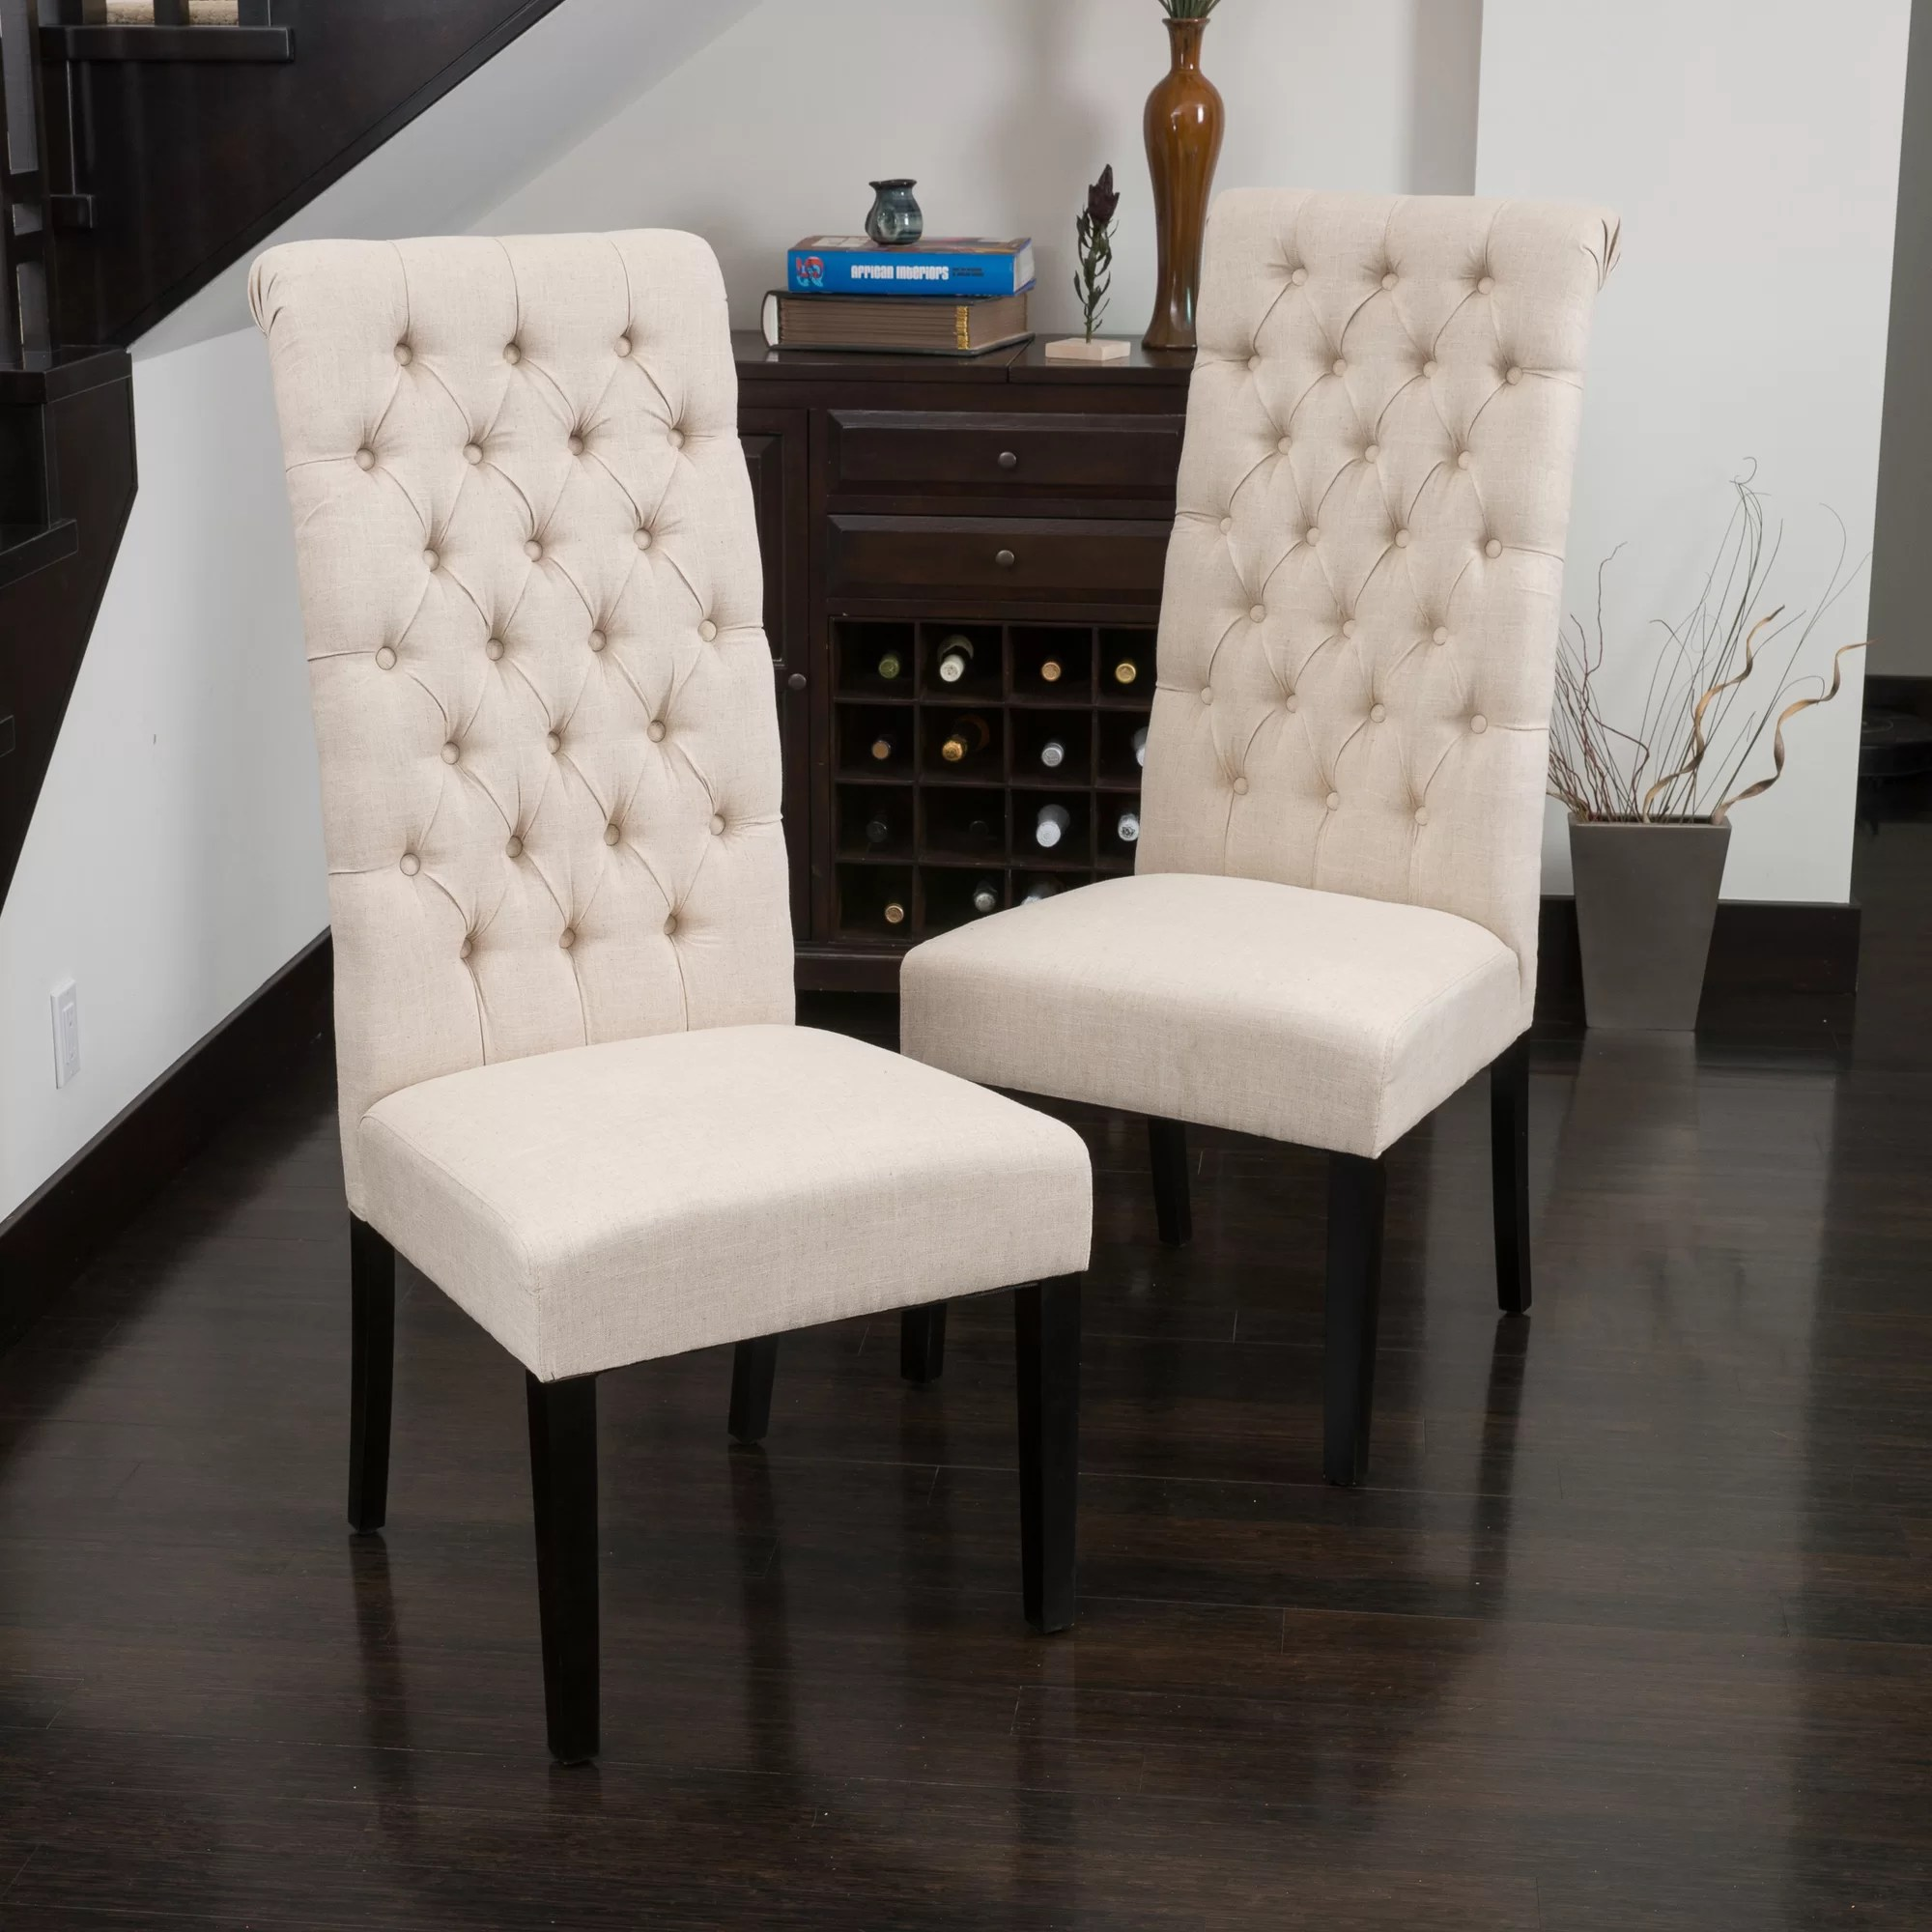 tall dining chairs office chair ebay charlton home estbury tufted upholstered